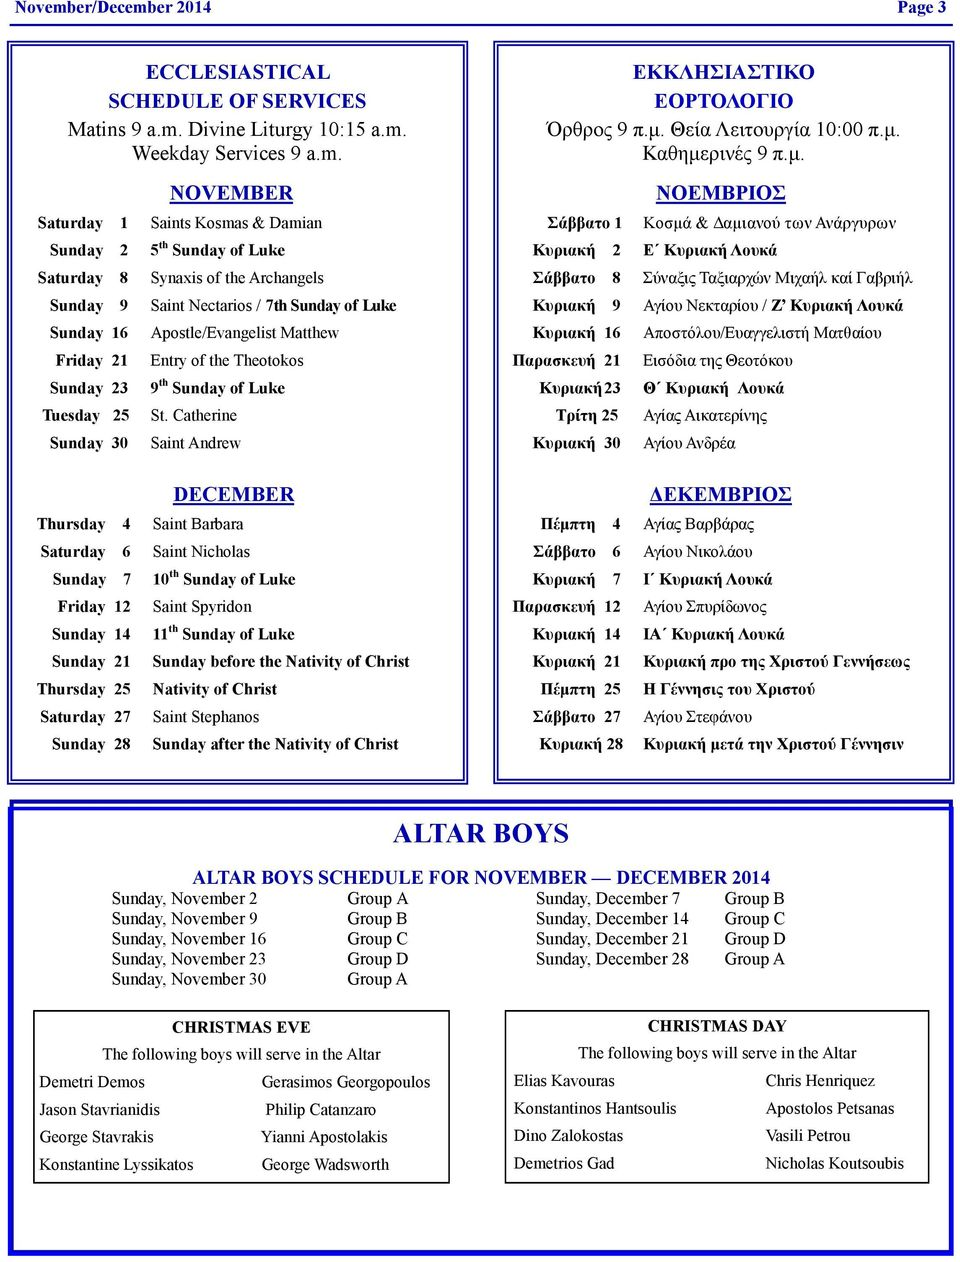 er 2014 Page 3 ECCLESIASTICAL SCHEDULE OF SERVICES Matins 9 a.m.